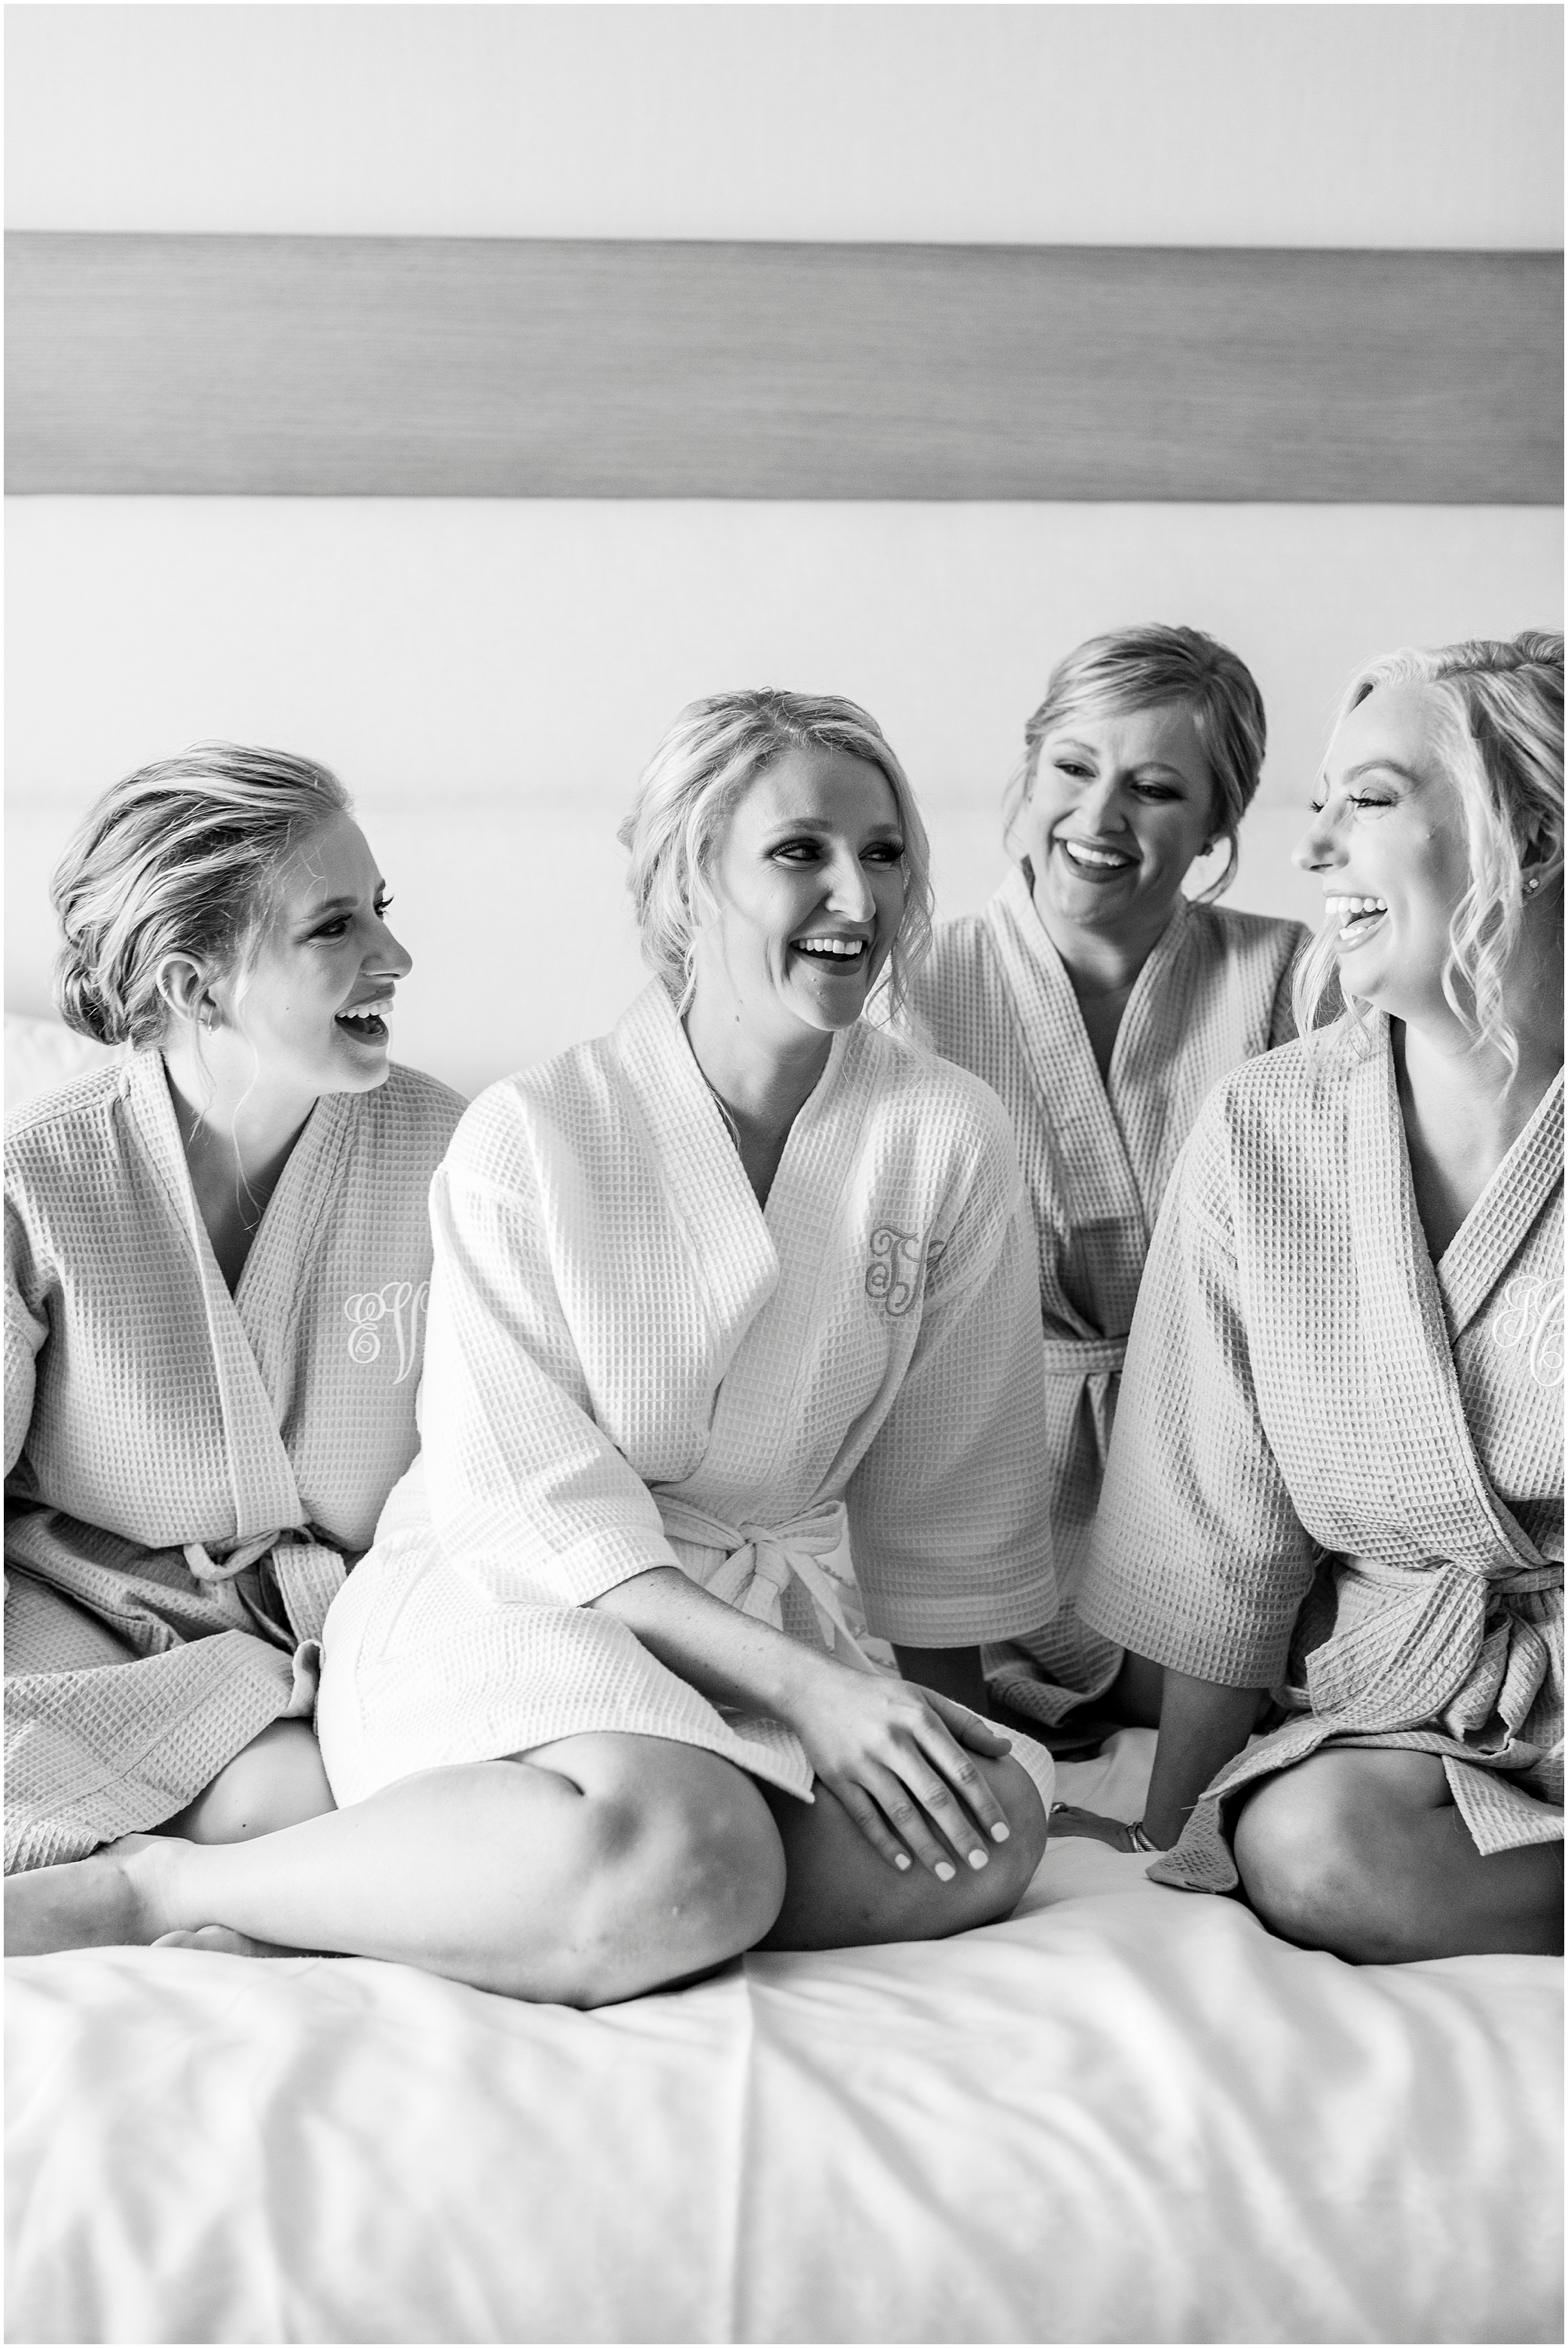 virginia beach wedding photography, bridesmaids laughing on hotel bed